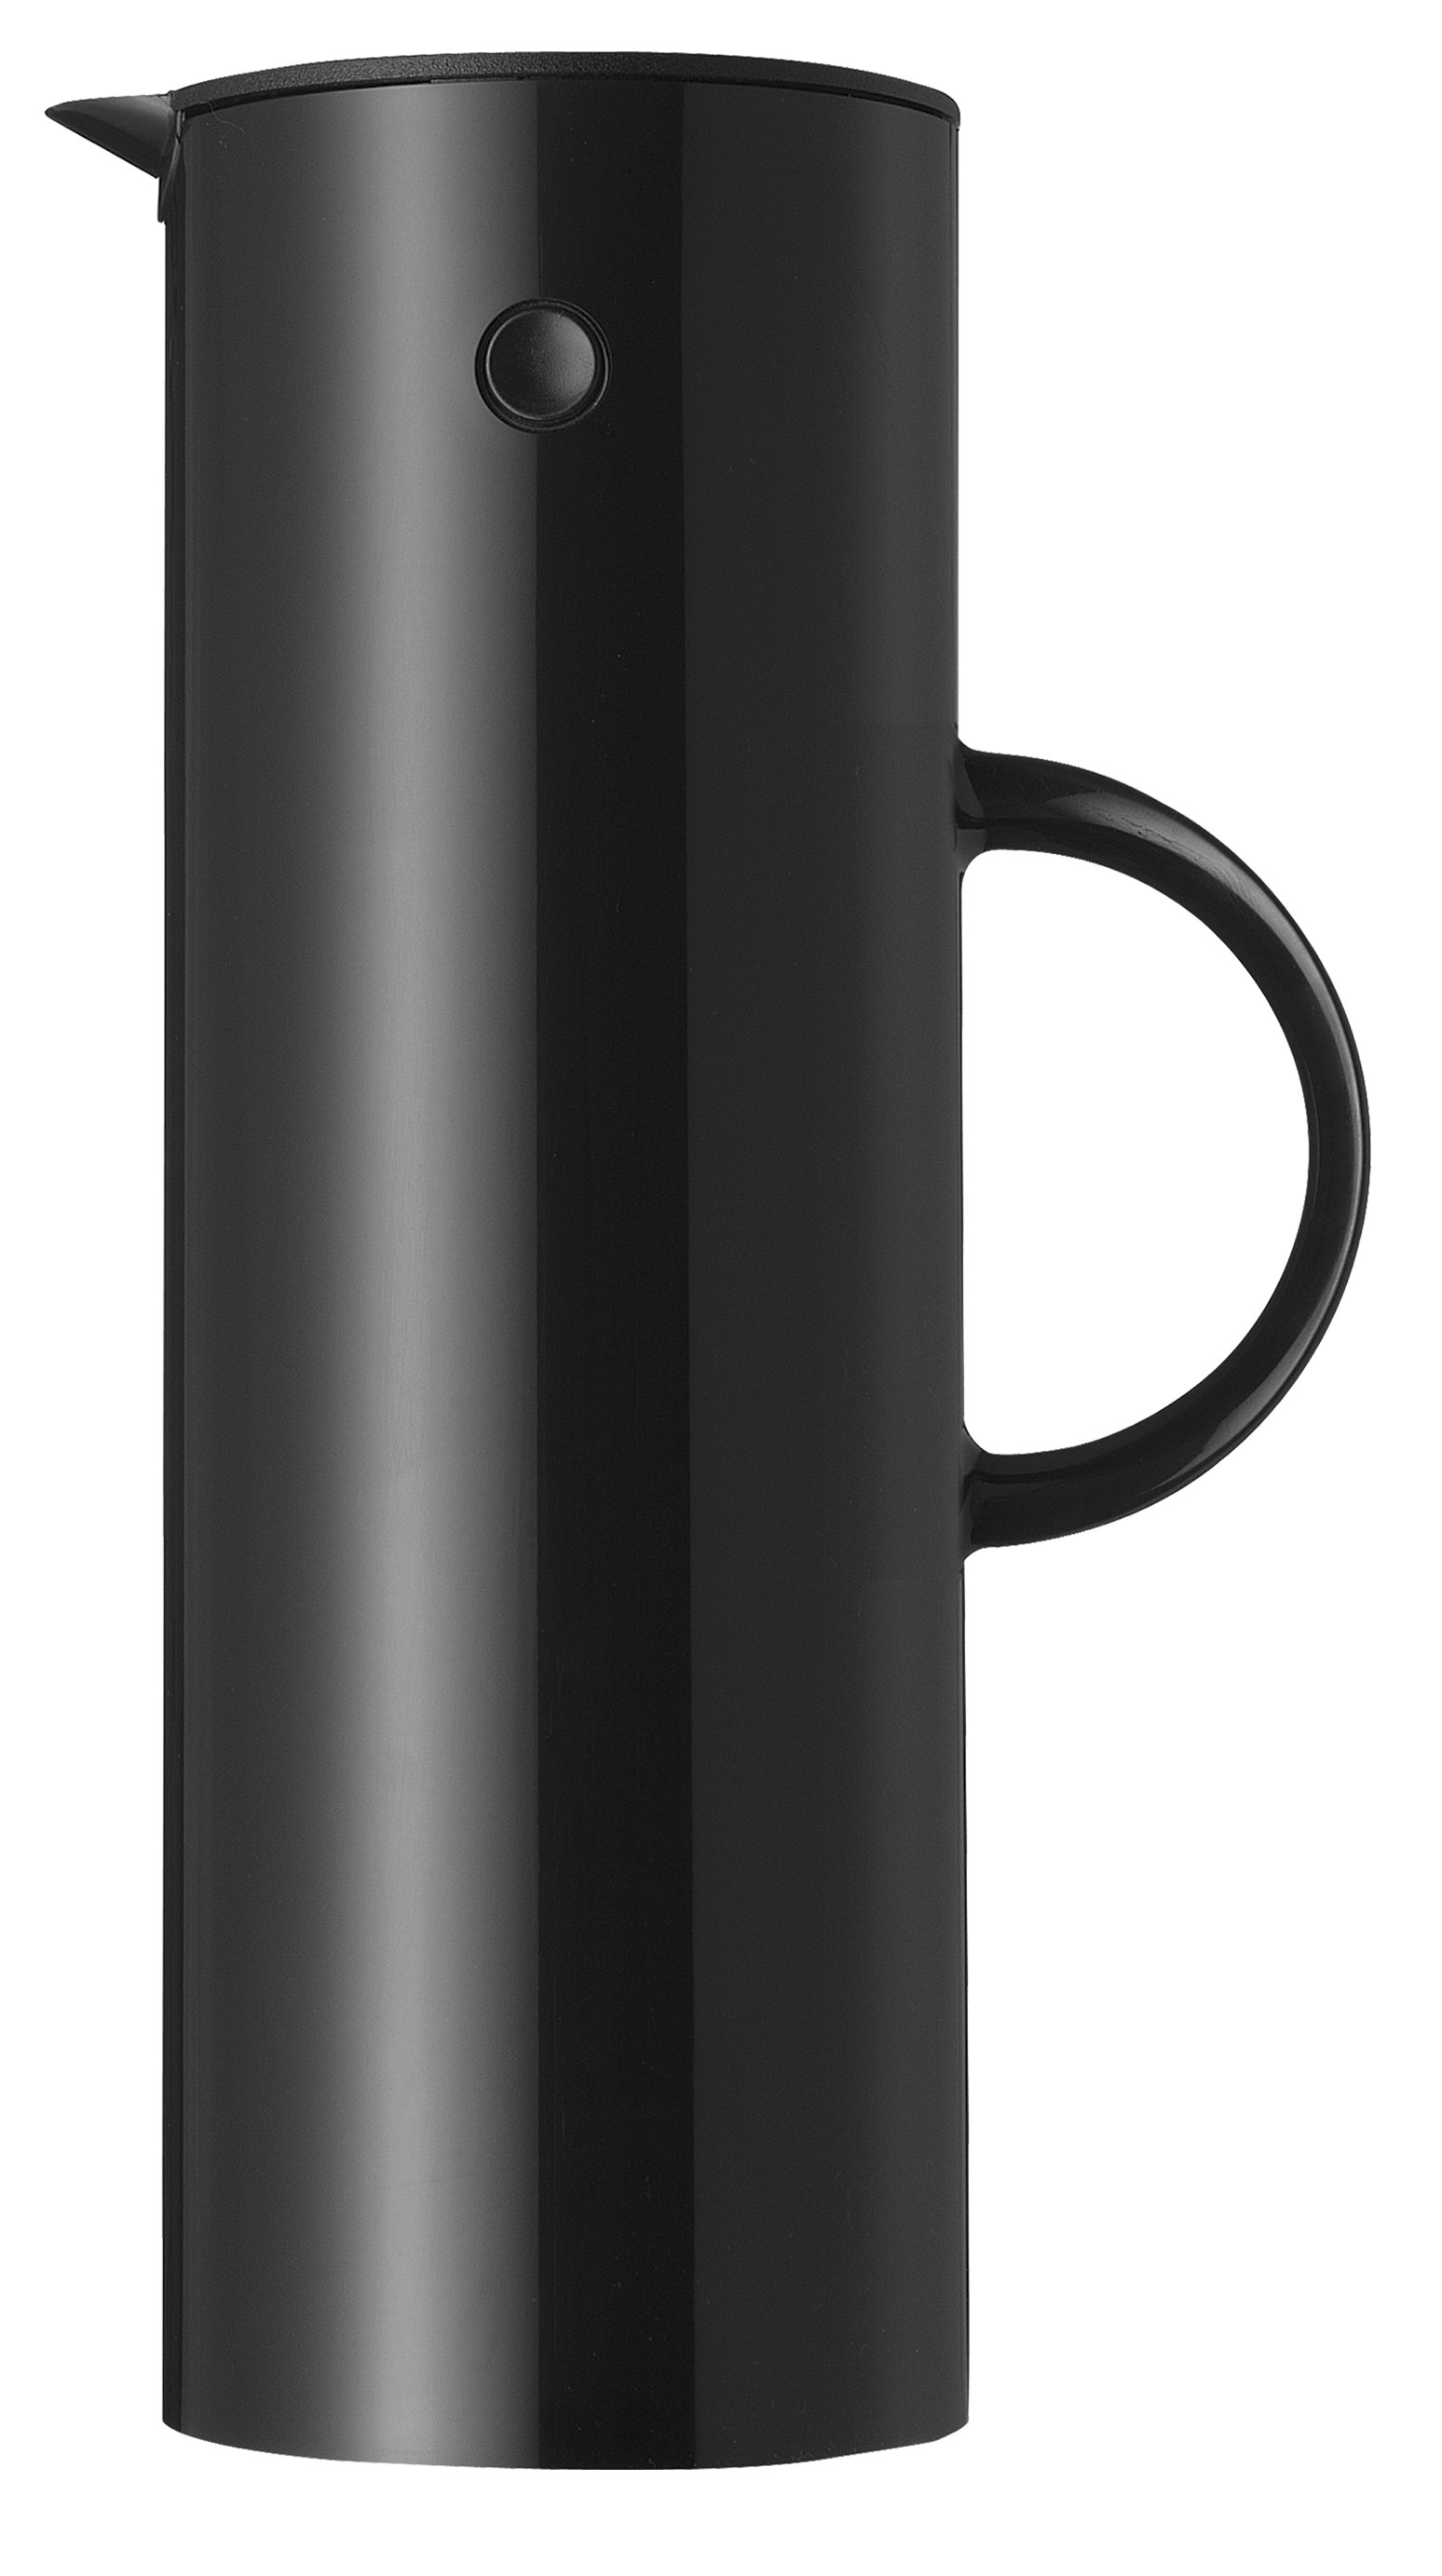 stelton em77 isolierkanne 1l black isolierkannen kaffee. Black Bedroom Furniture Sets. Home Design Ideas